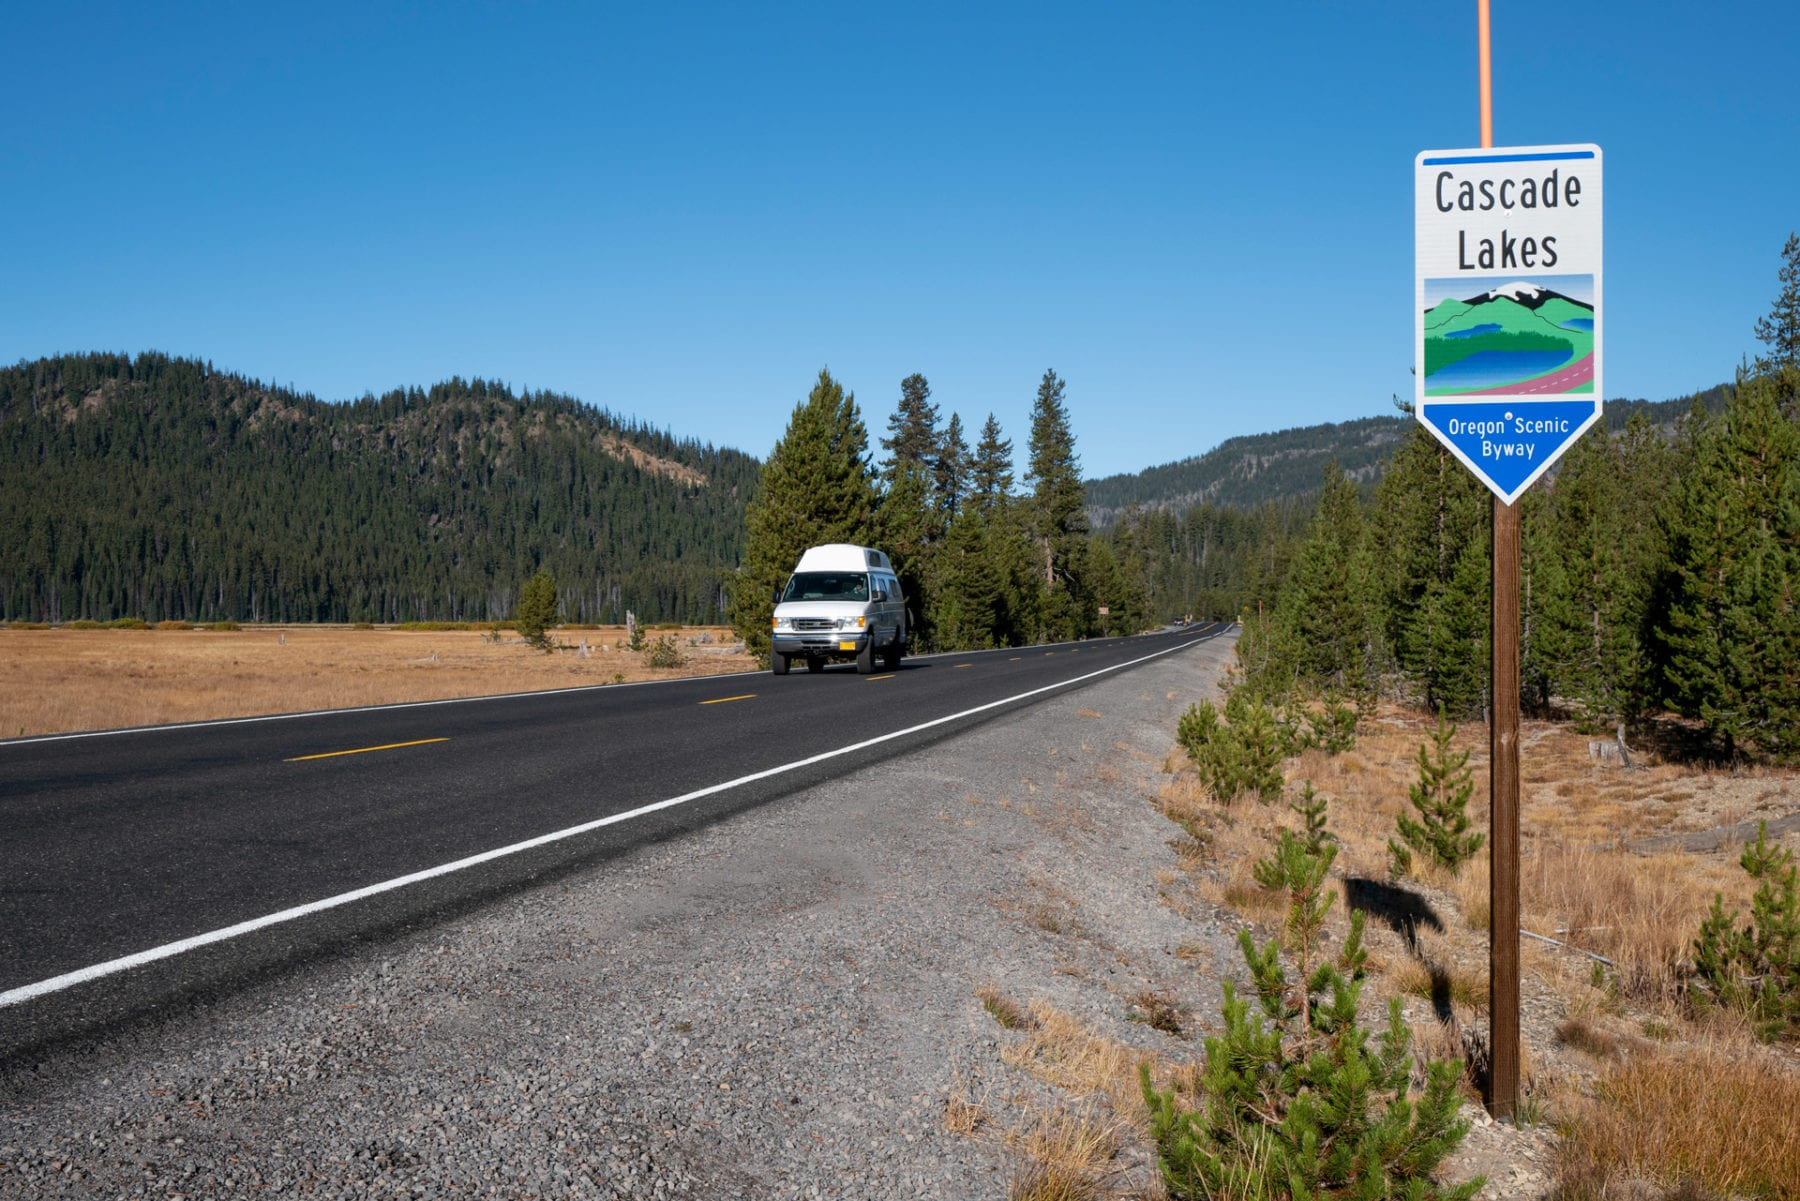 driving down Oregon's Cascade Lakes Scenic Byway in a camper van